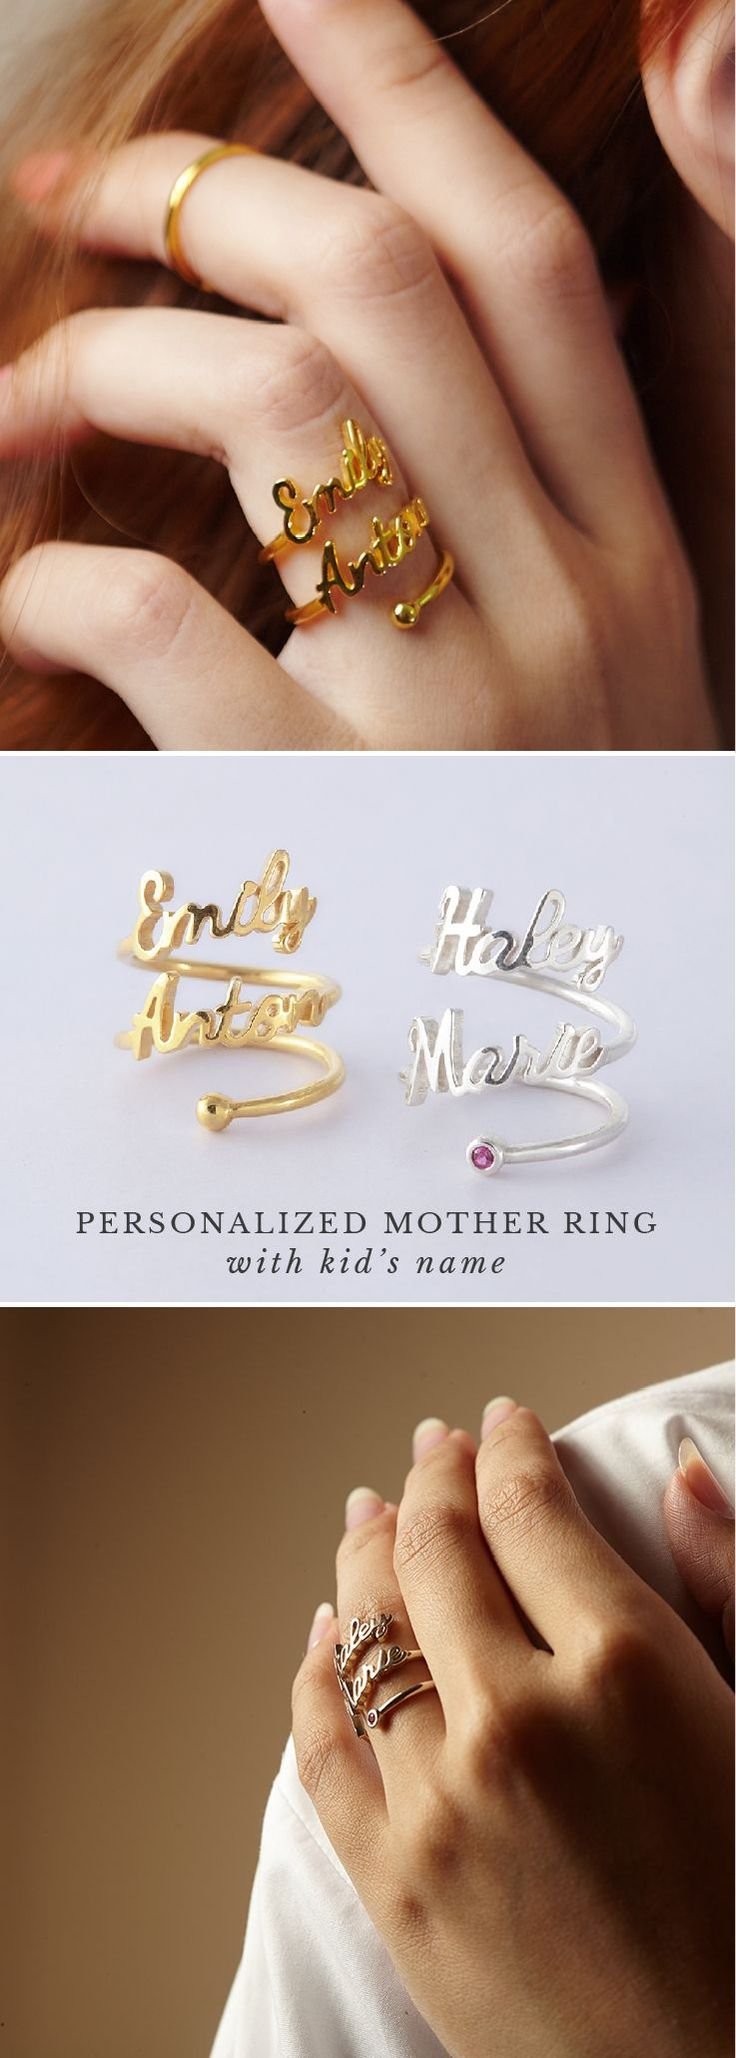 Personalized Name Ring - Double Name • gold name rings • my name ring • rings with name • rose gold name ring • Personalized name rings • Custom name rings • Actual rings with name • customized couple rings • Bridesmaid jewelry • Jewelry for sister • xmas presents • cool gifts for kids • best christmas gifts for friends • best friend present ideas • unique birthday gifts for girls • christmas presents for kids #teenbirthdaygifts